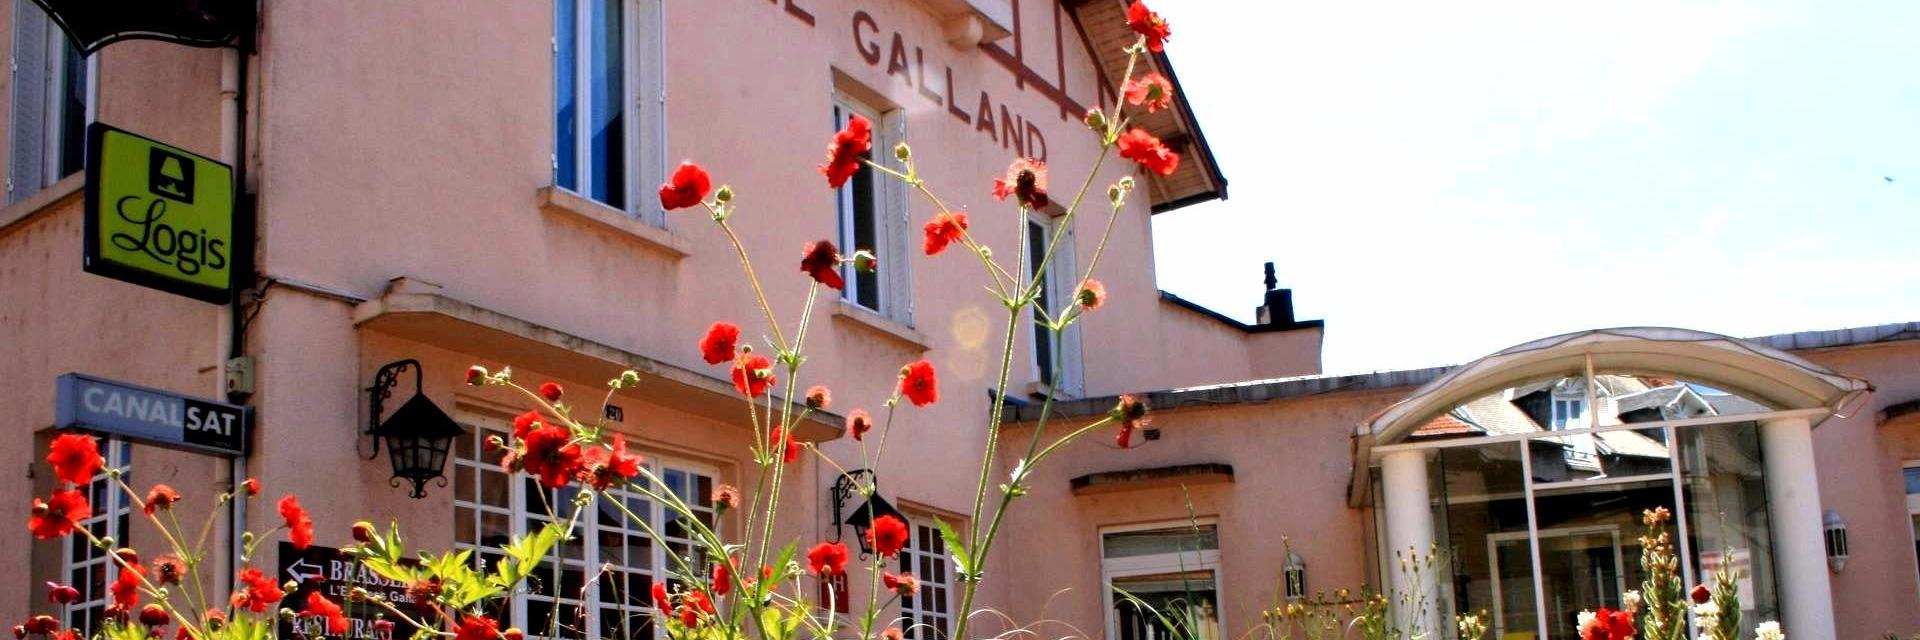 Hôtel Restaurant Galland -